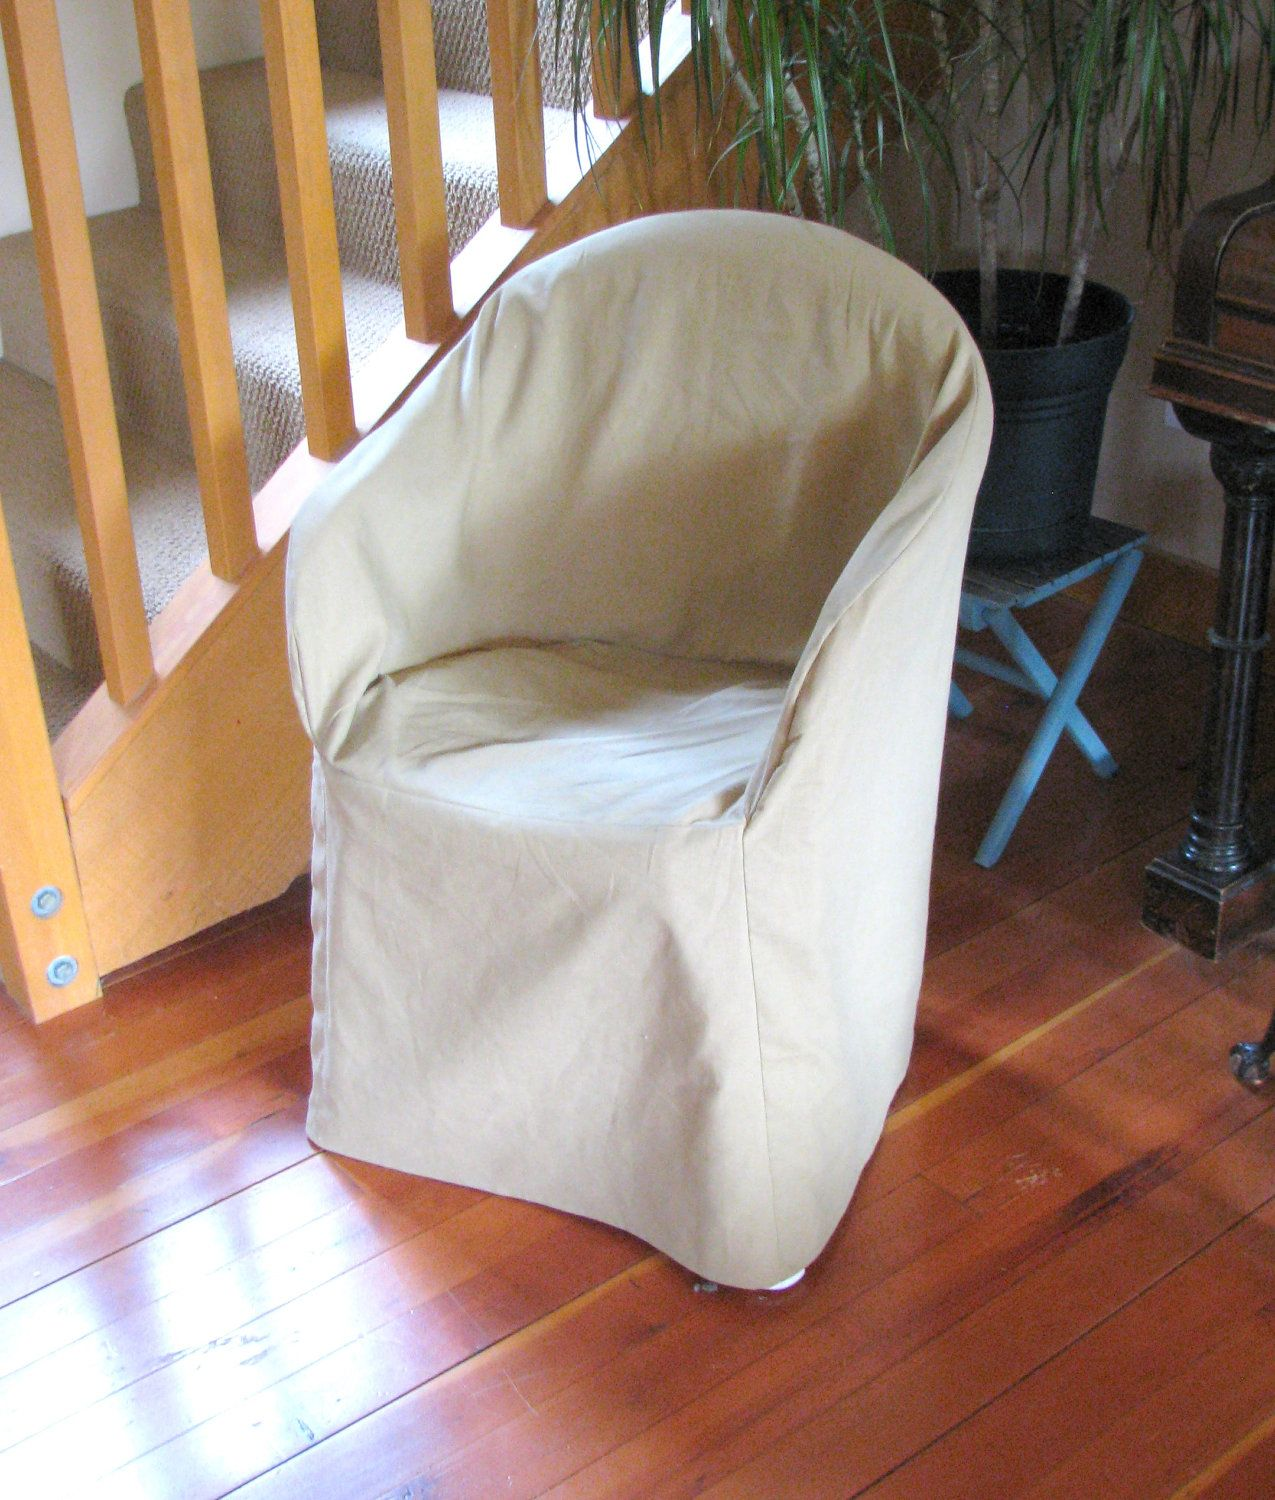 Slipcover Pattern, Outdoor Resin Chair, LowBack, New